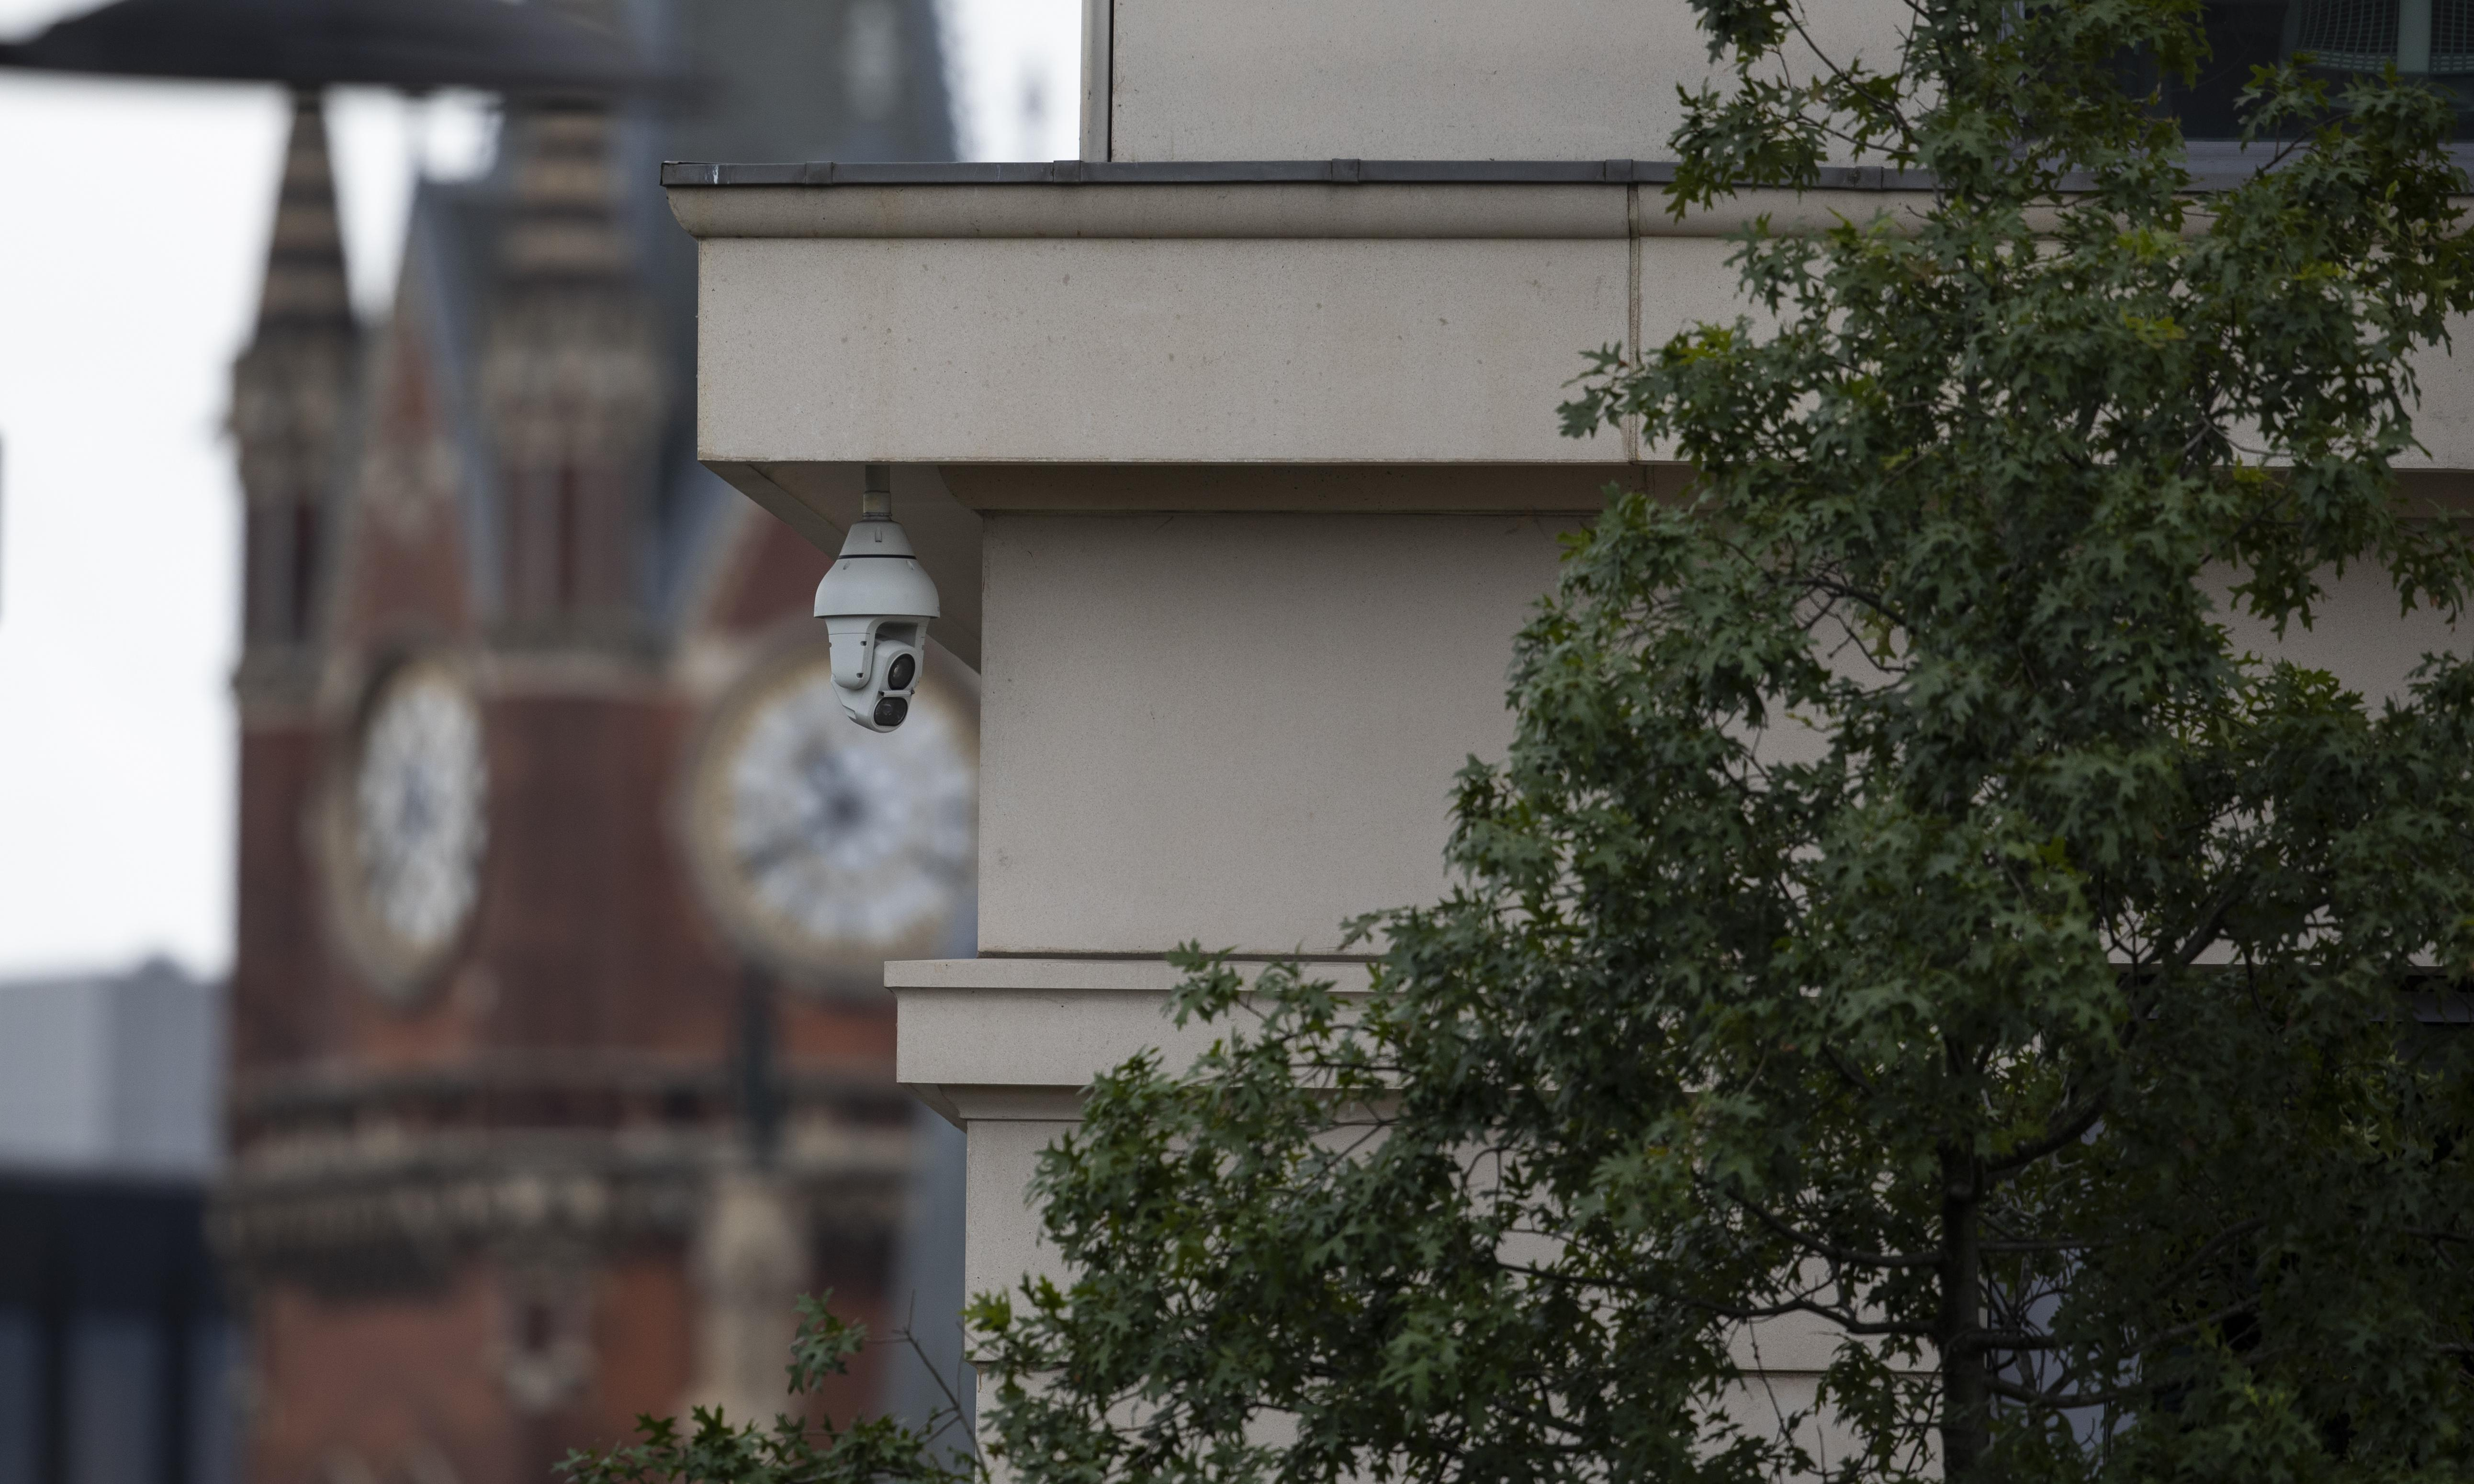 Facial recognition technology scrapped at King's Cross site